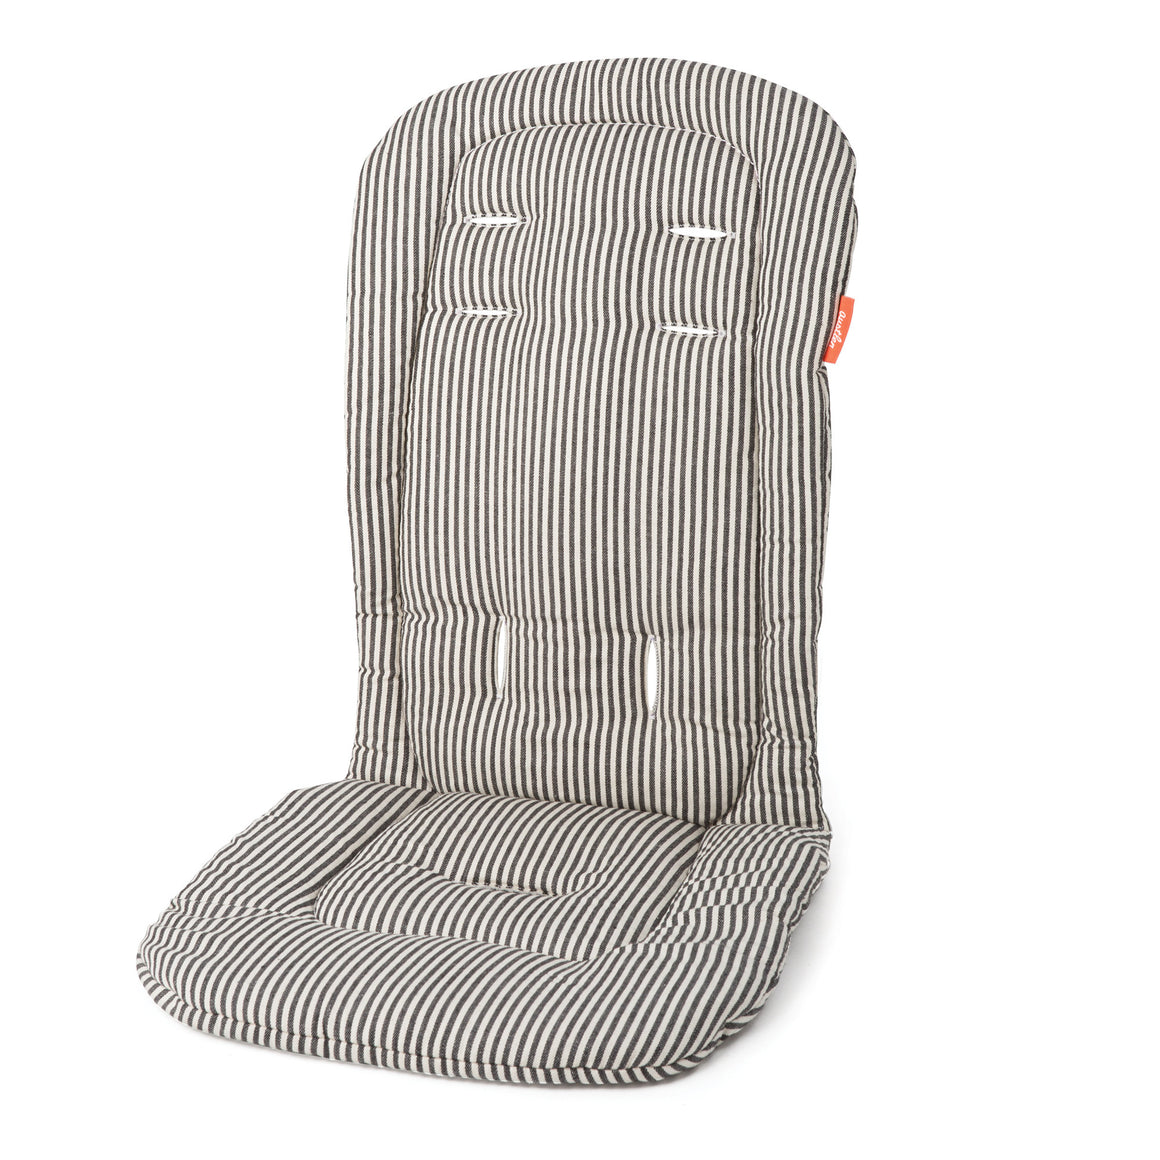 Austlen BABY co. Seat Liner - Second Seat in Black Stripe